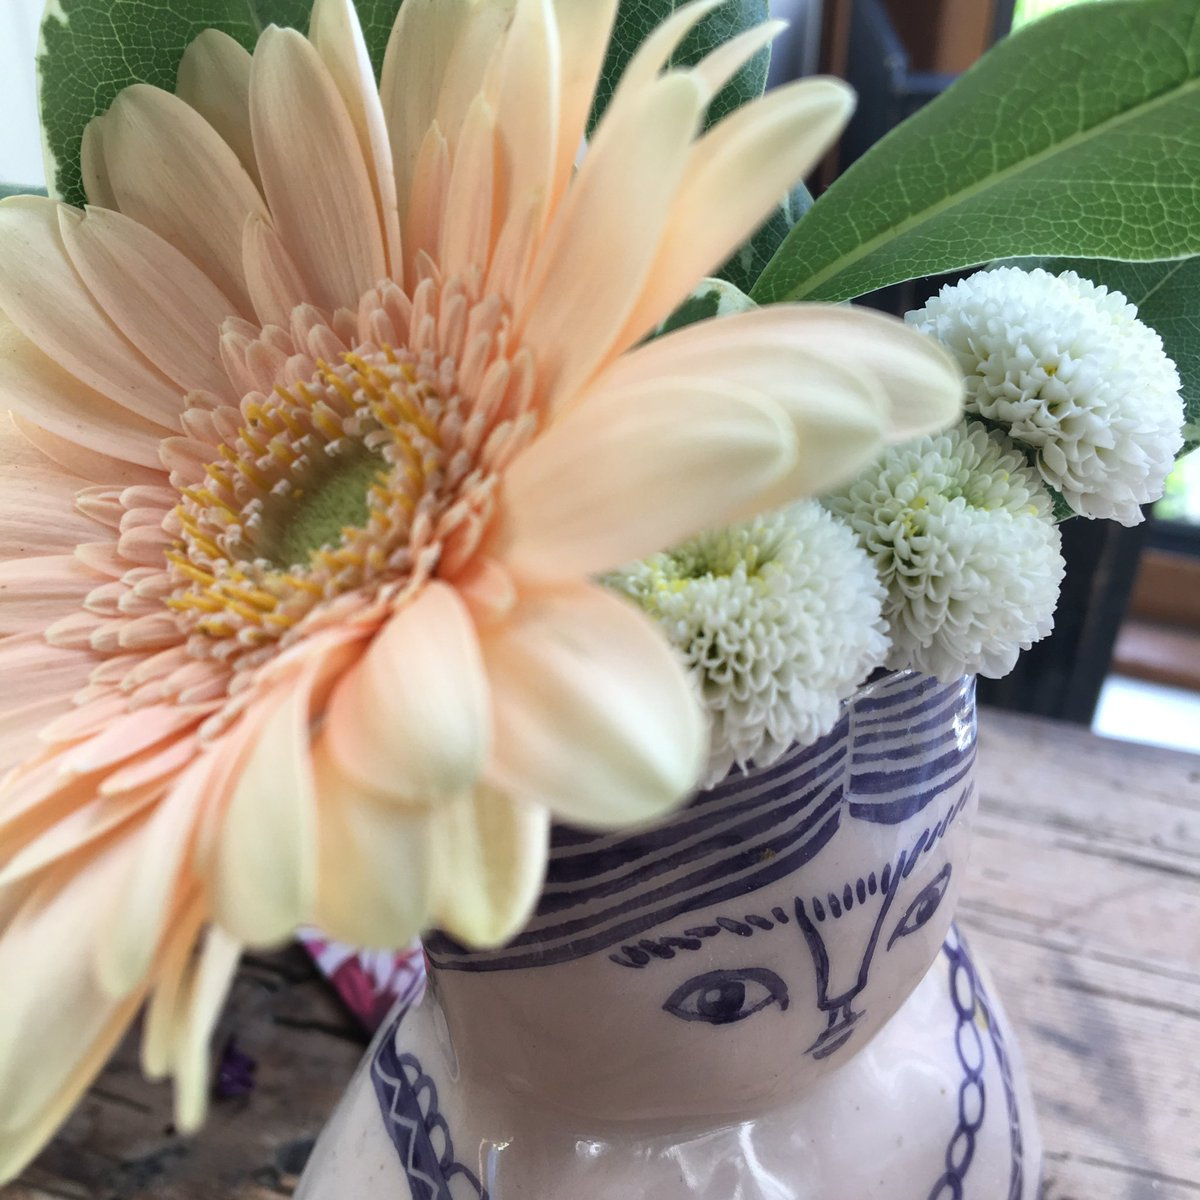 #FridaKahlo after recent flamboyance with Bearded Irises, we're a bit more mellow now - Gerbéra and 'wee white things'. How's your #LockdownThursday ?<br>http://pic.twitter.com/MDiF2rHIAv